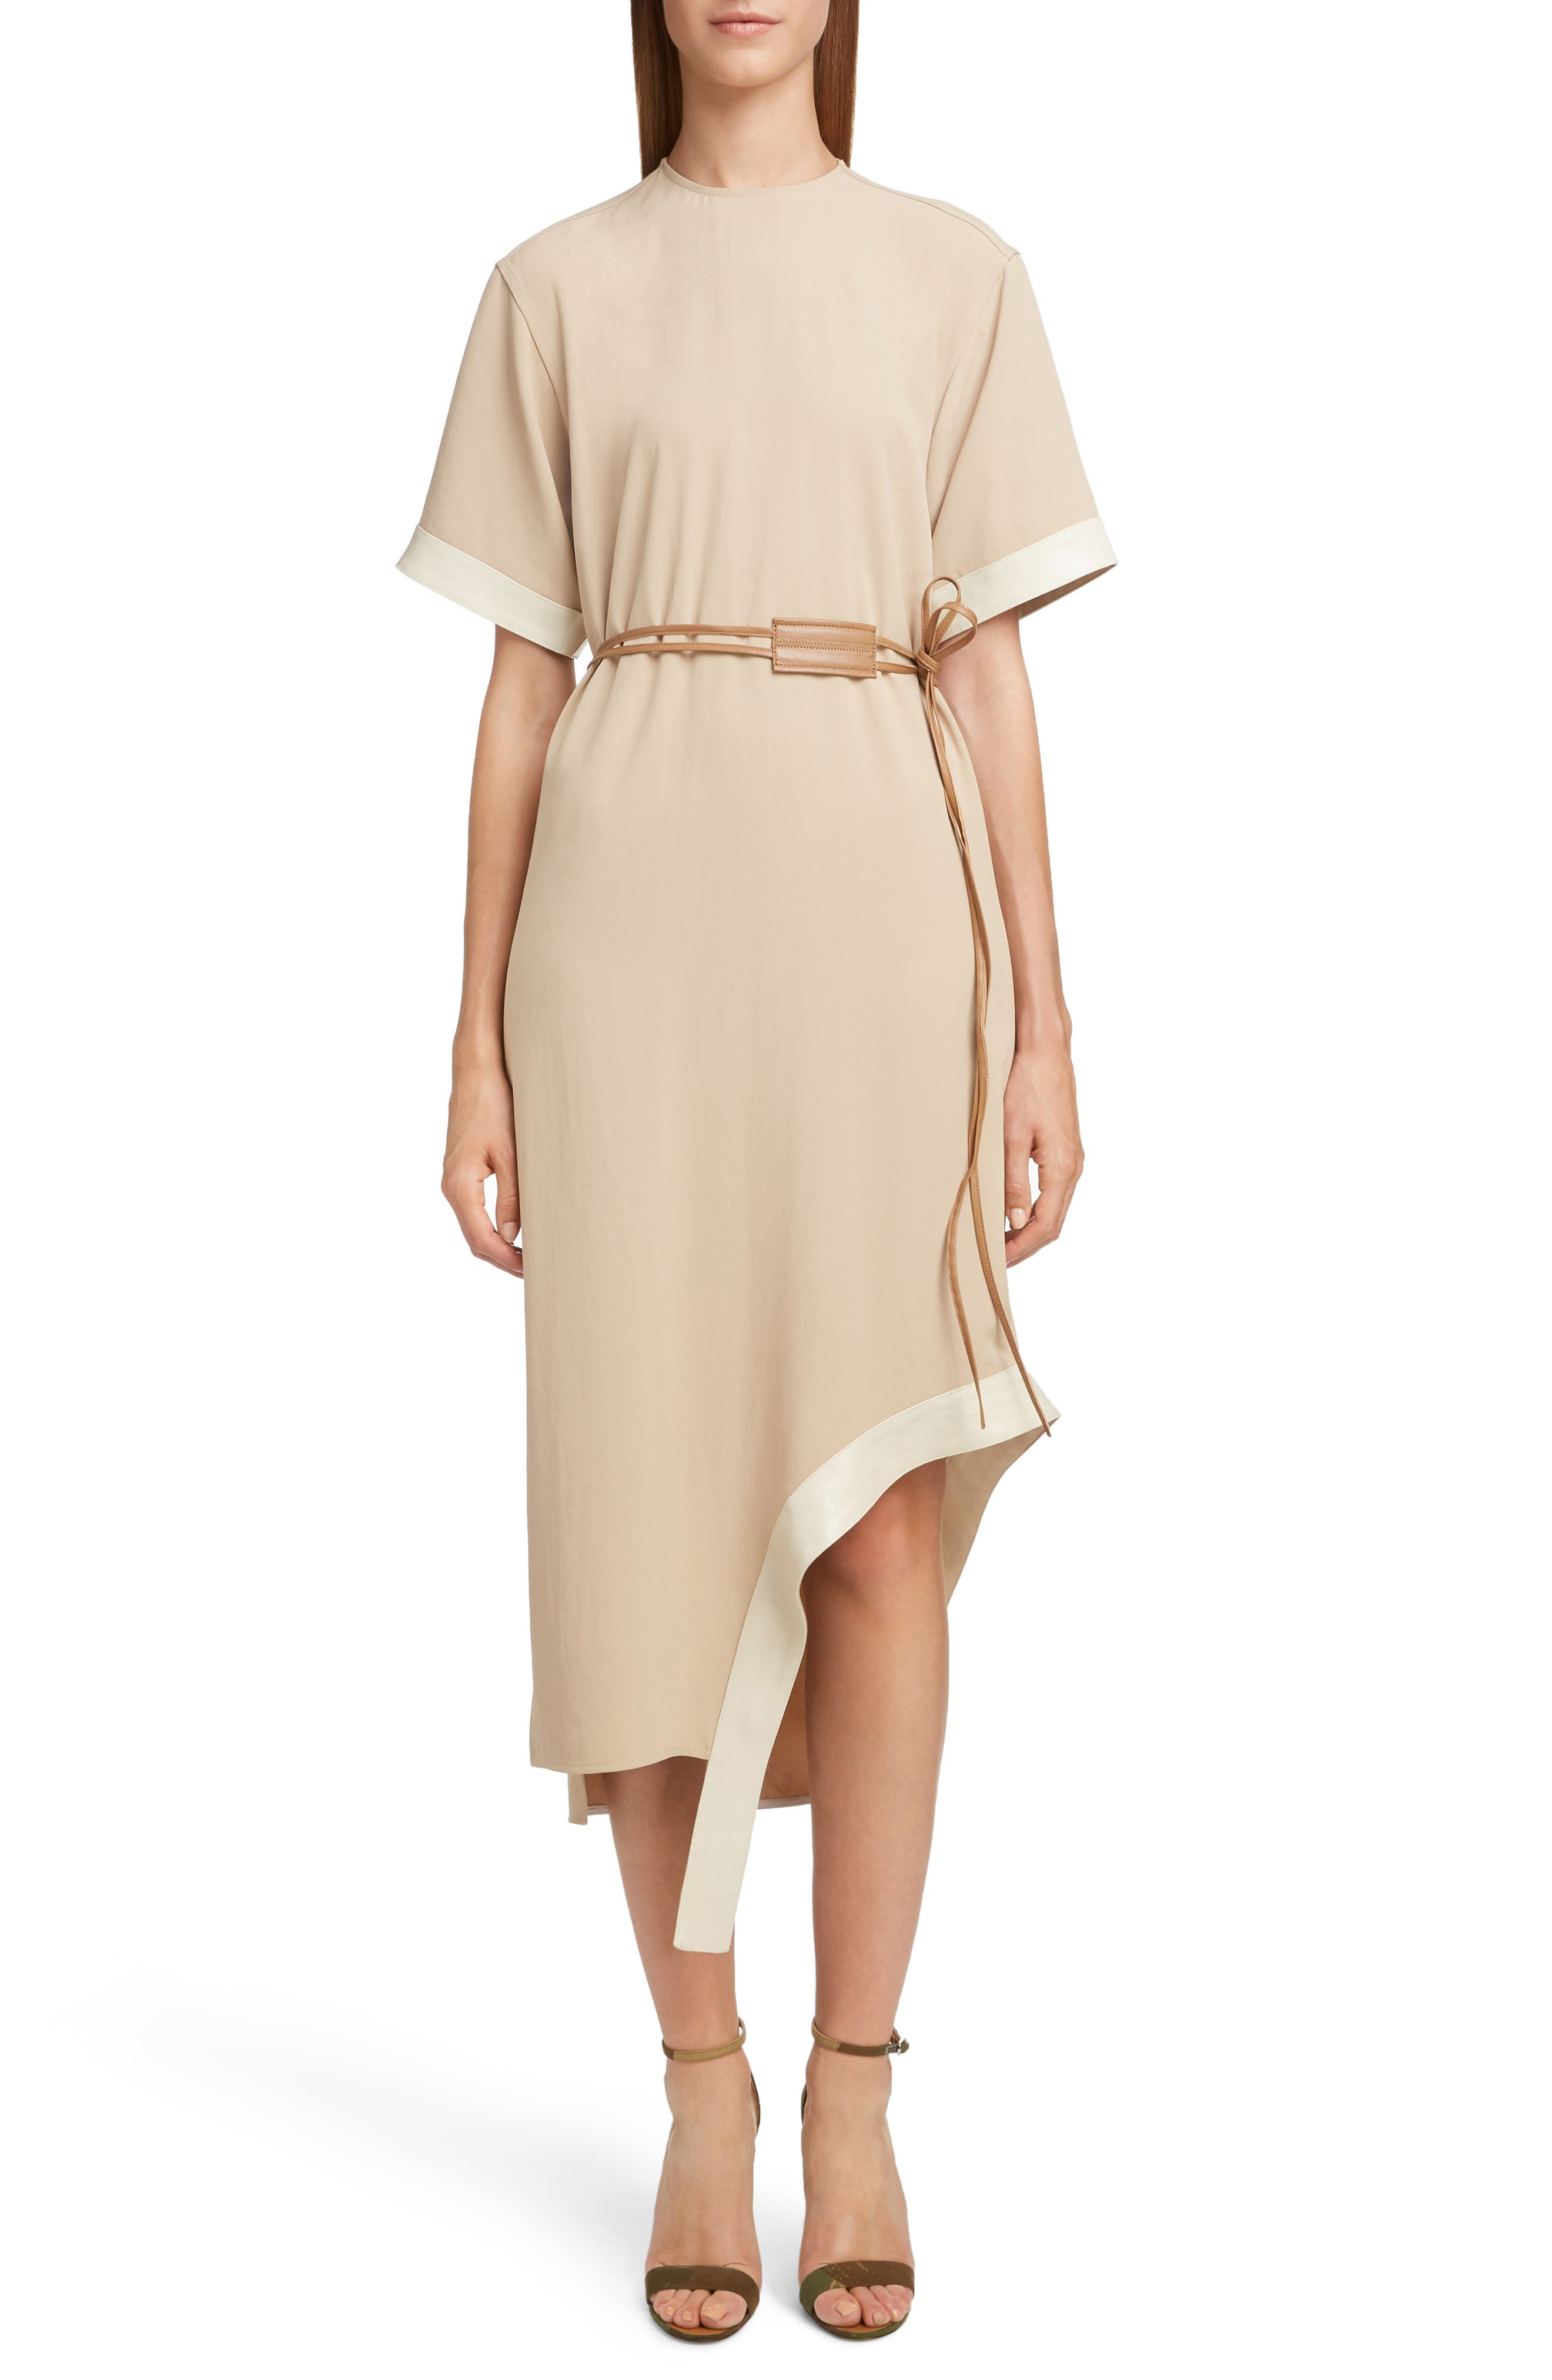 VICTORIA BECKHAM Leather Belt Asymmetrical Dress, Main, color, BEIGE/ CAMEL